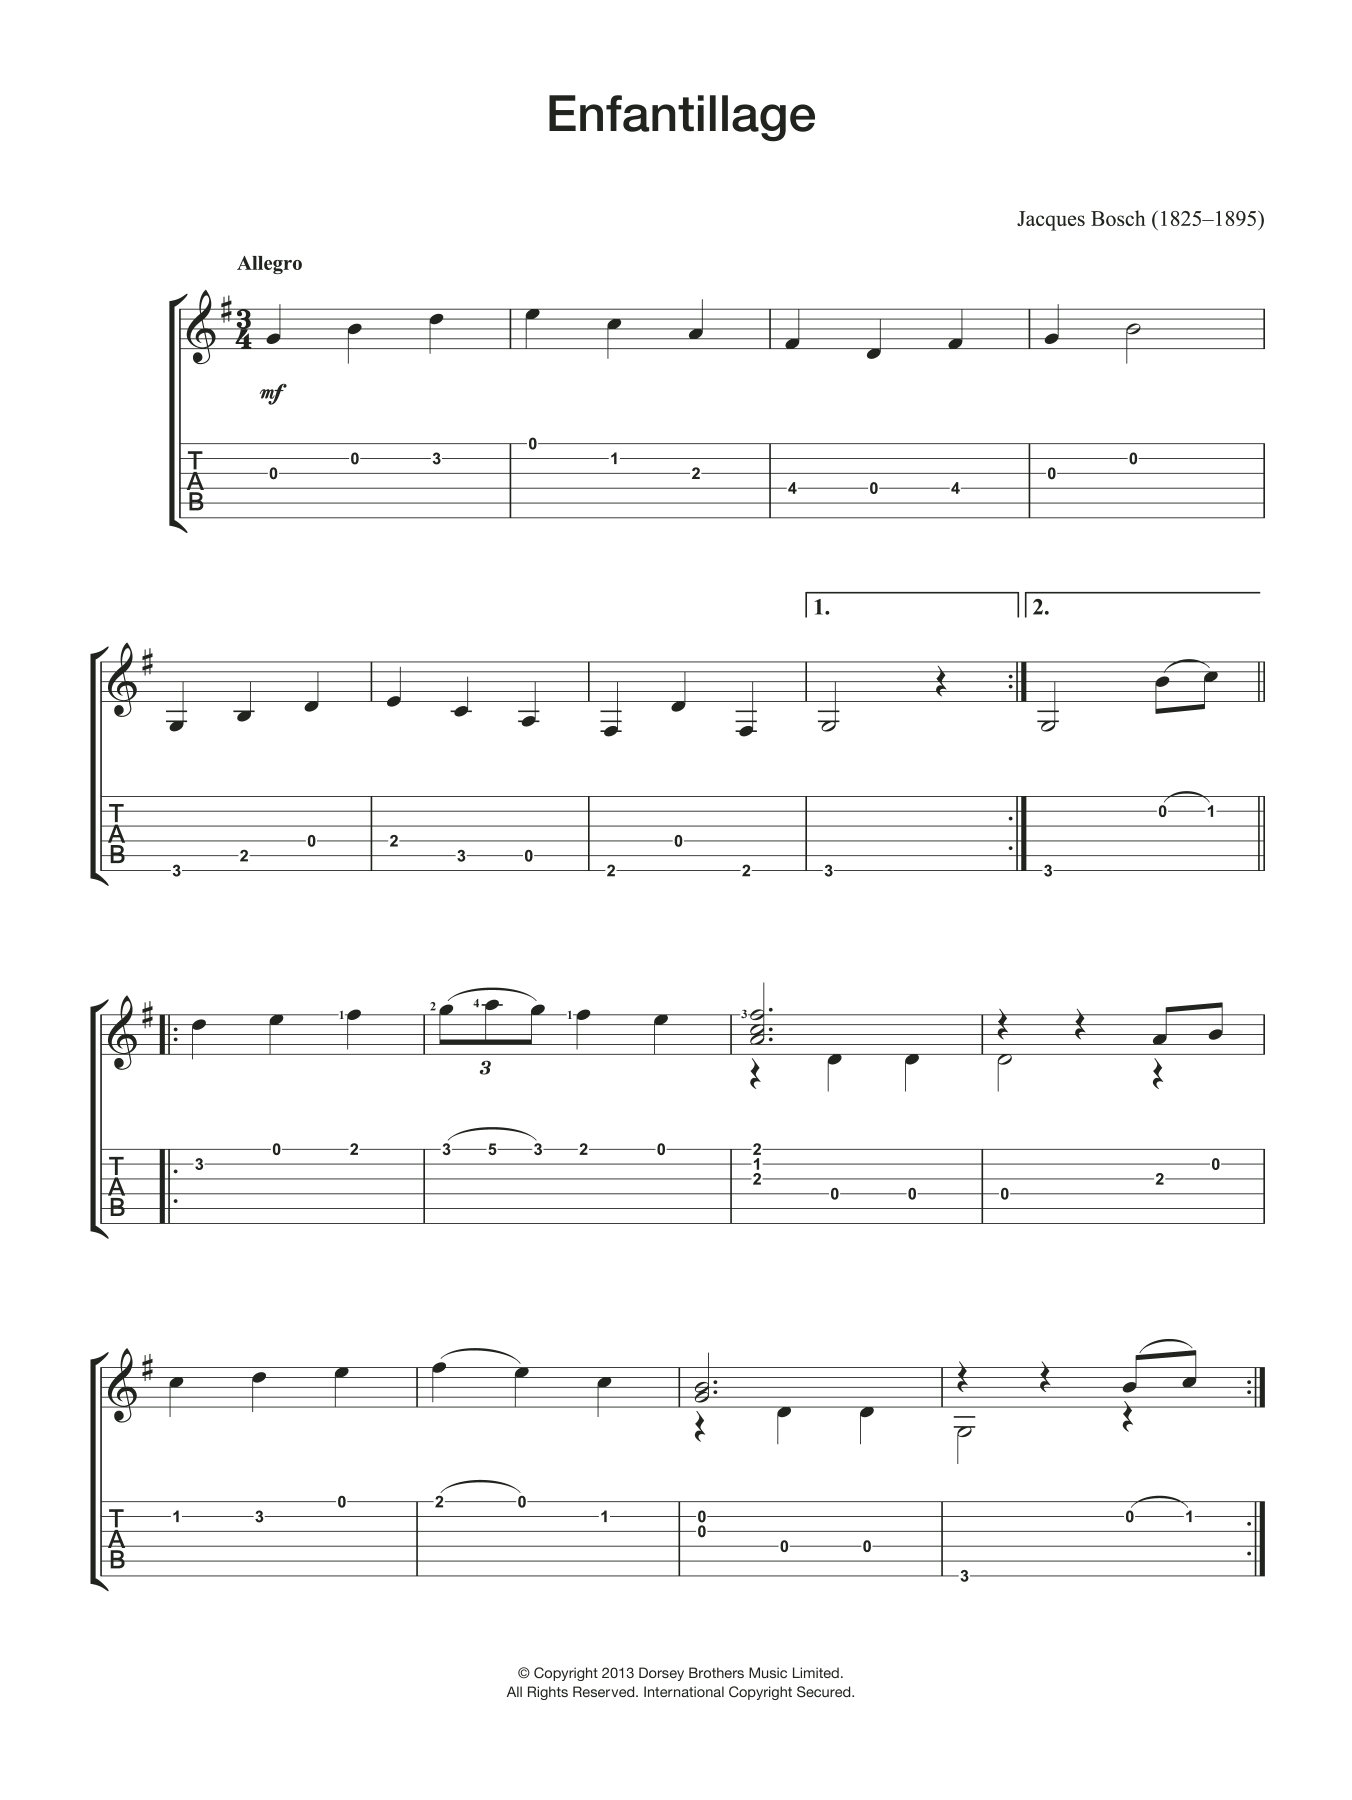 Enfantillage Sheet Music